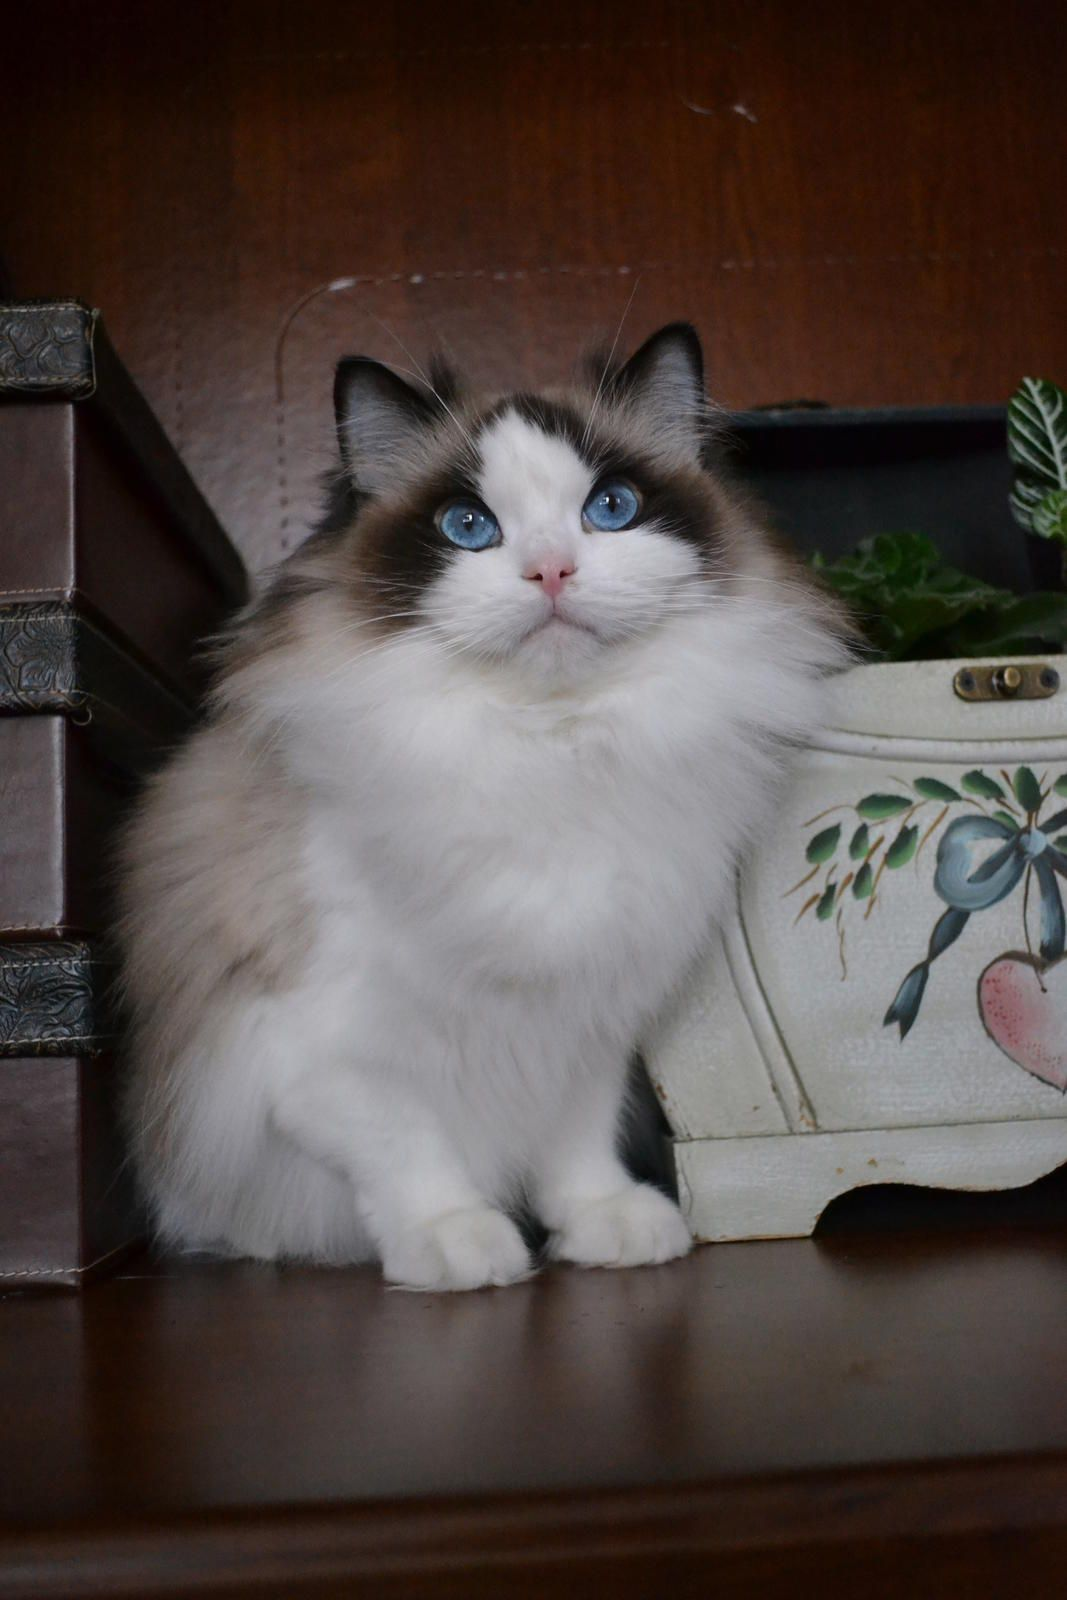 Go To Cuteftw Com 3 3 3 For Cute Apparel And Accessories Free Shipping Worldwide Cute Cats And Kittens Ragdoll Kitten Ragdoll Cat